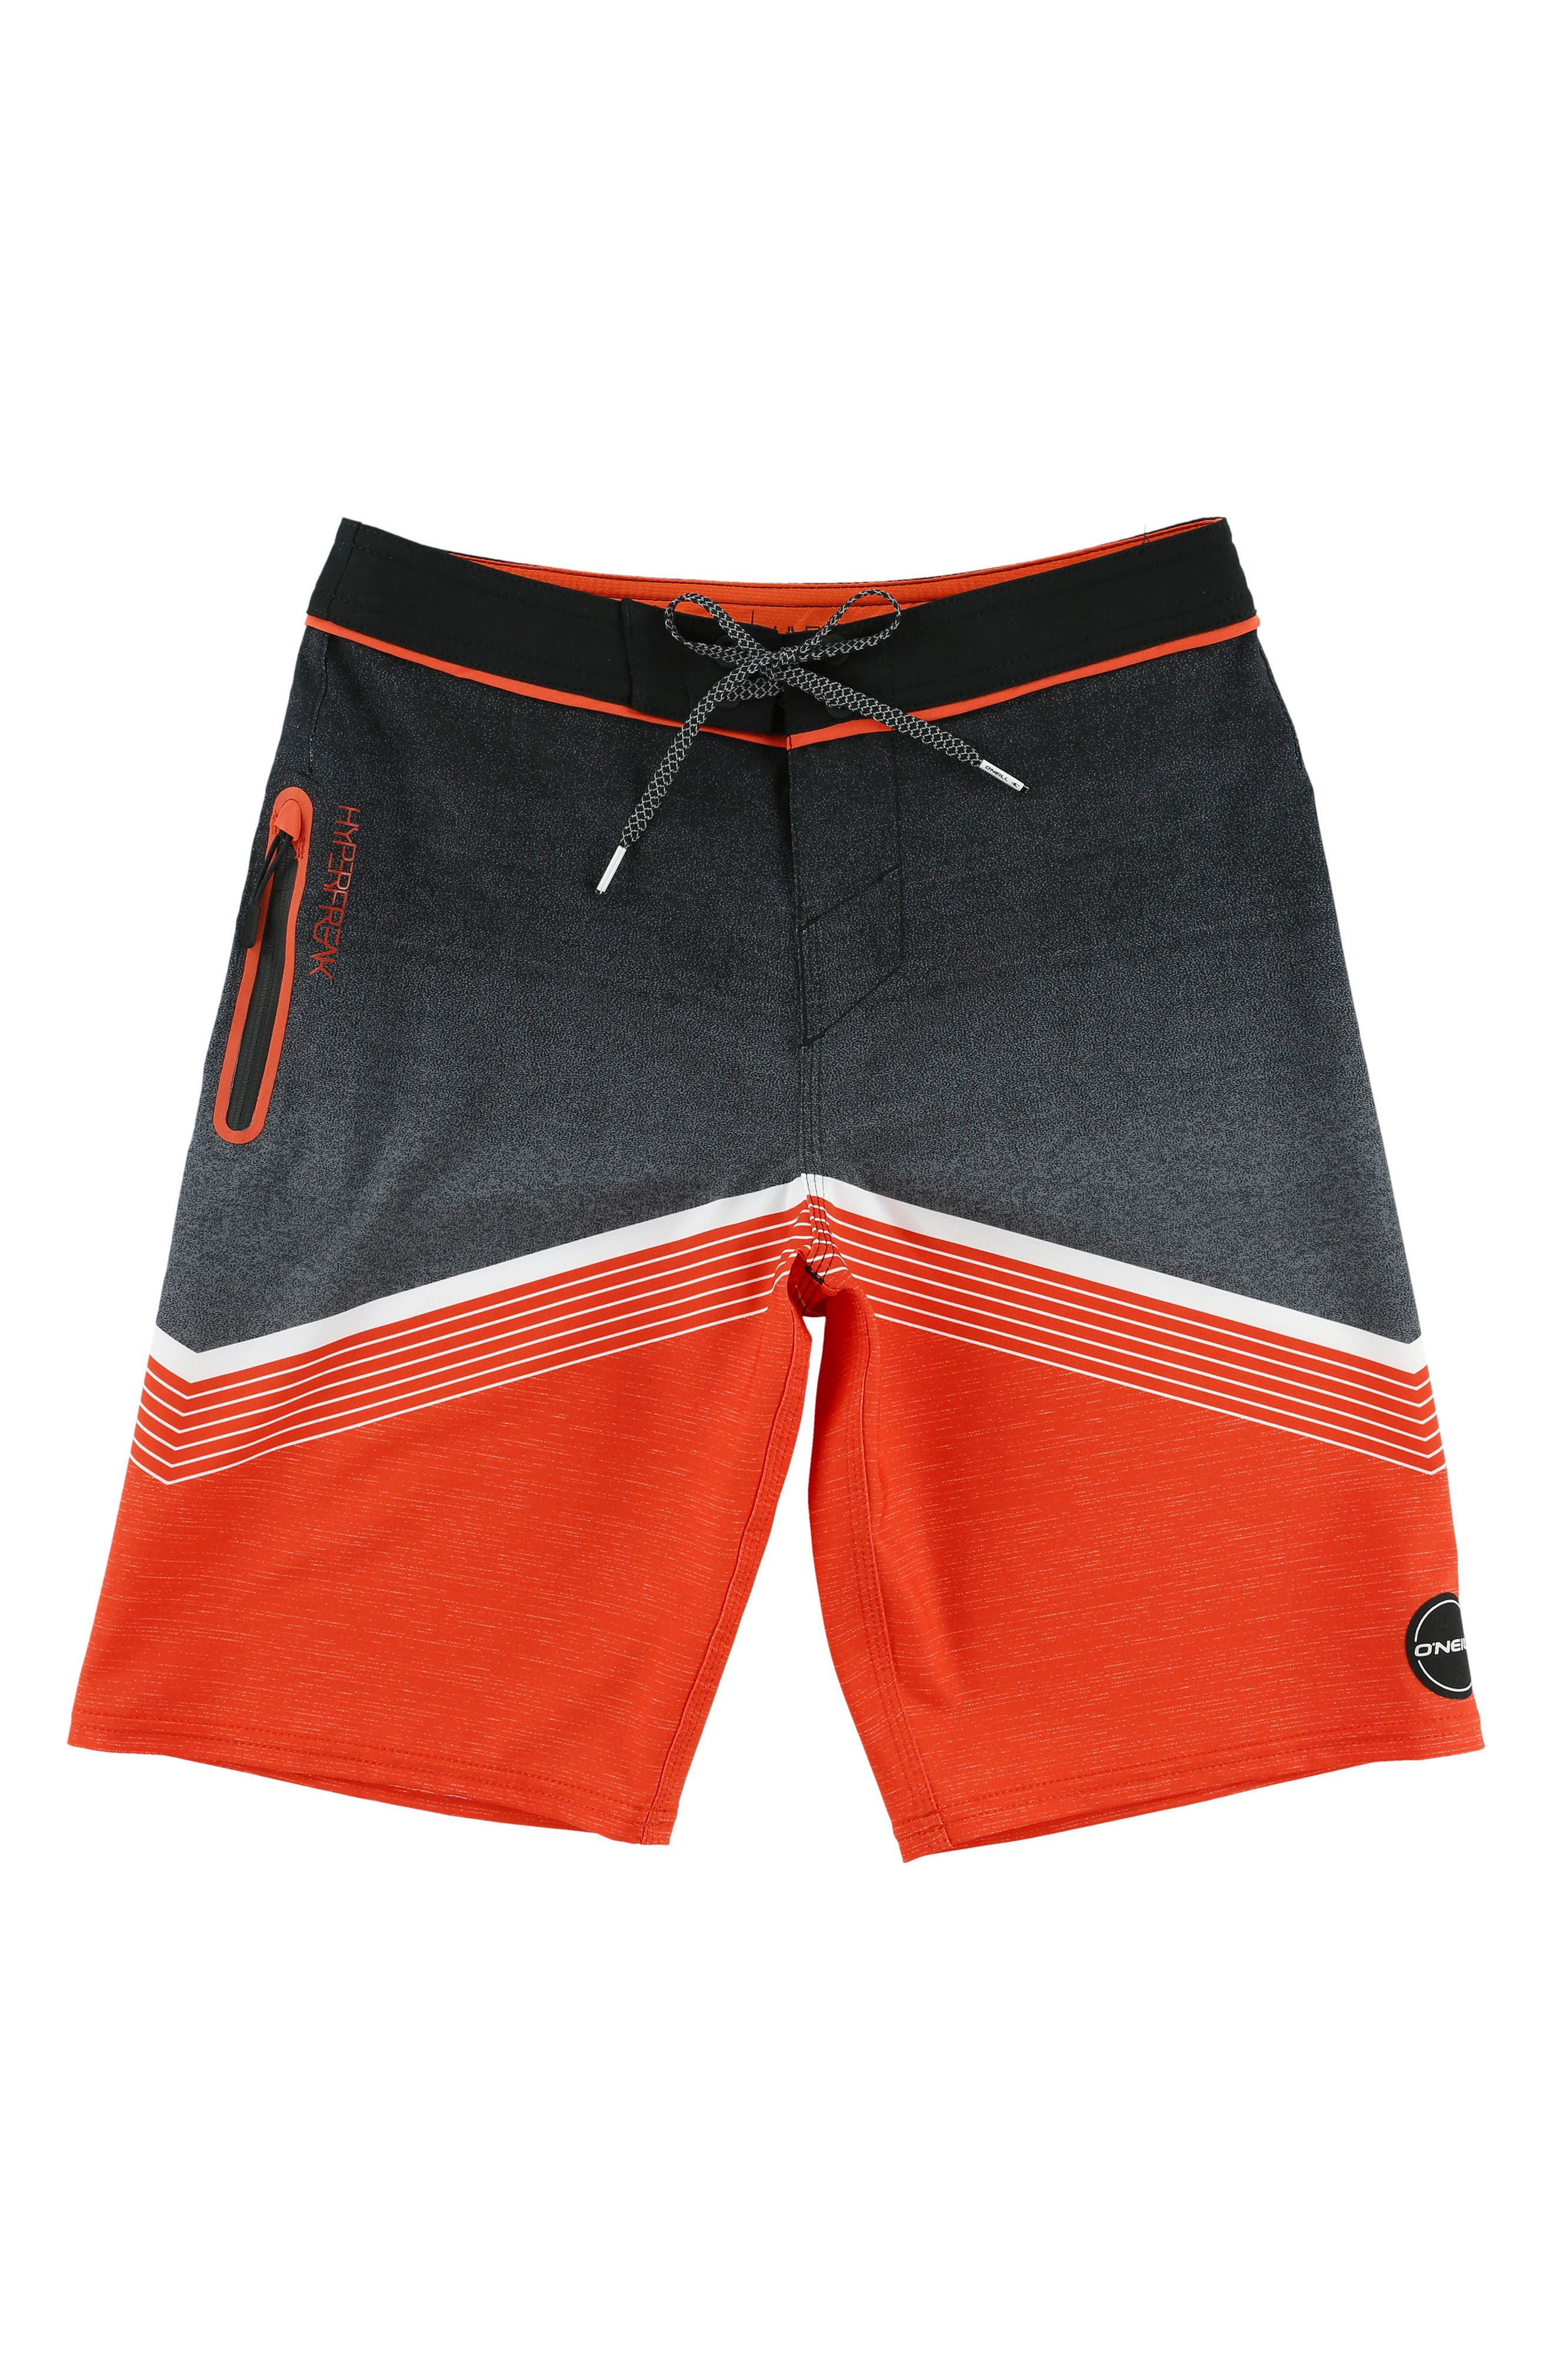 Main Image - O'Neill Hyperfreak Stretch Board Shorts (Big Boys)